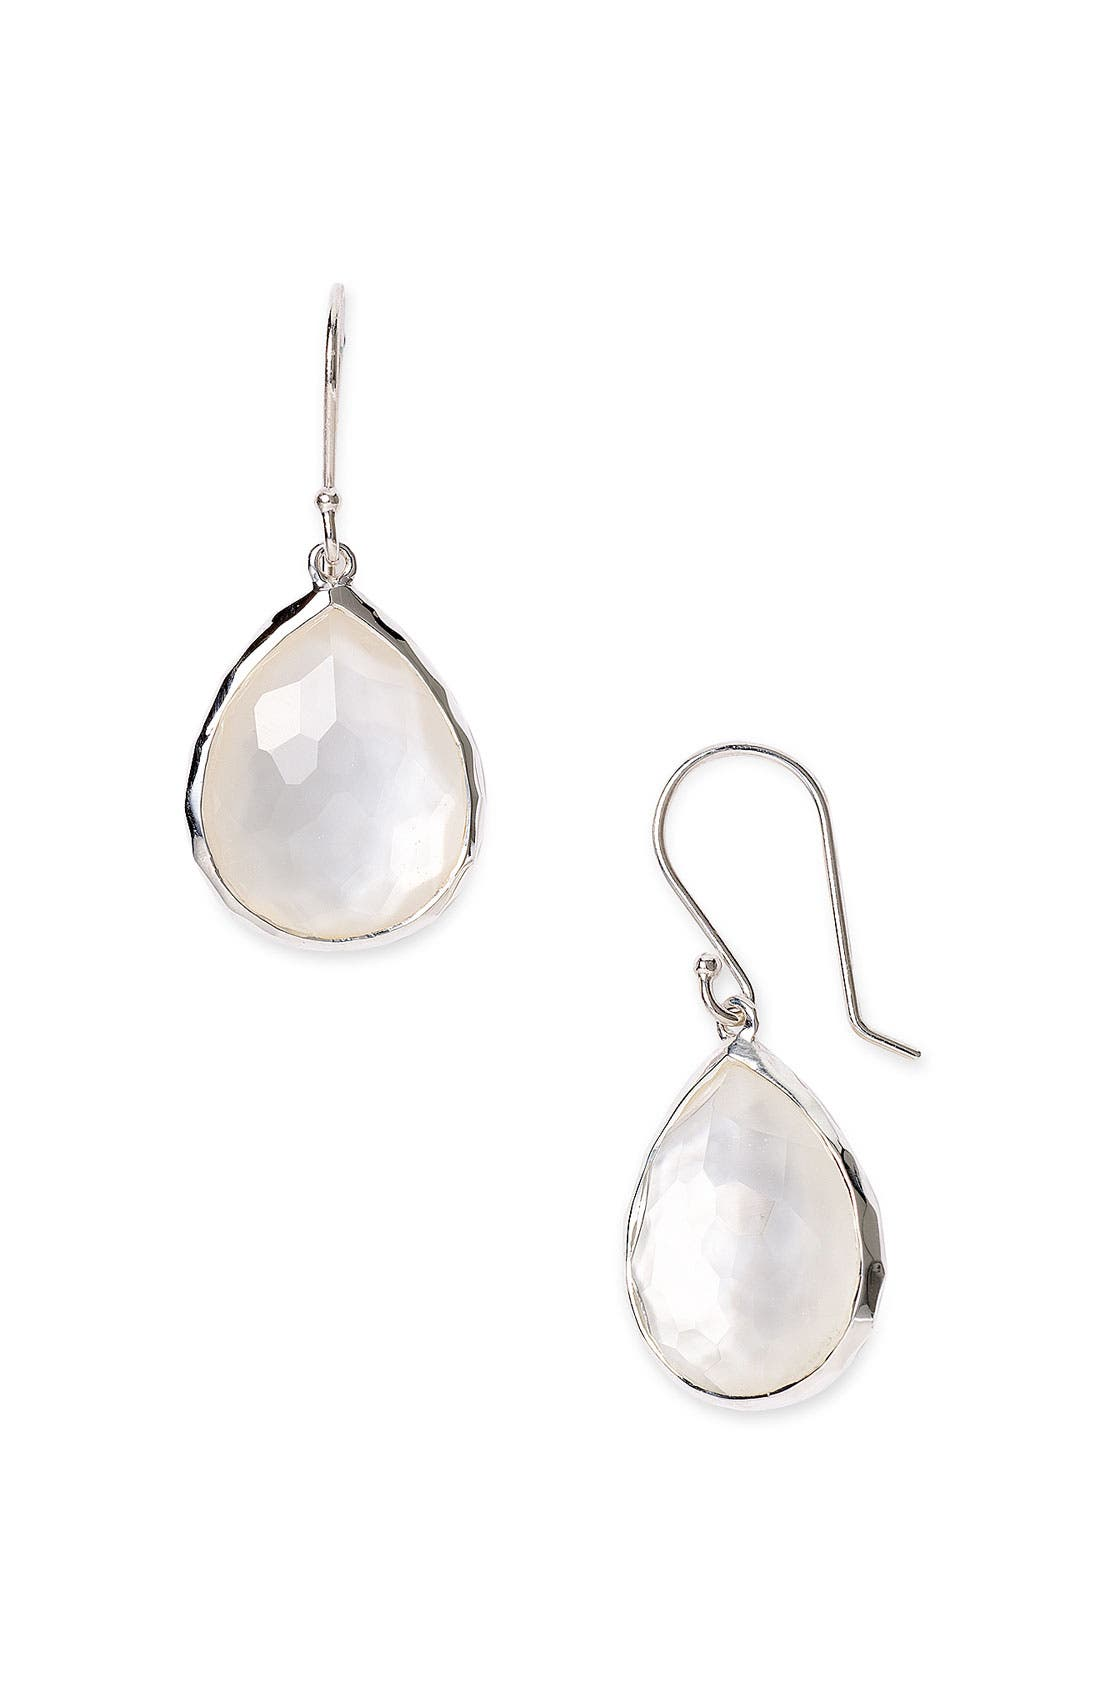 Alternate Image 1 Selected - Ippolita 'Wonderland - Rainbow' Teardrop Earrings (Online Only)